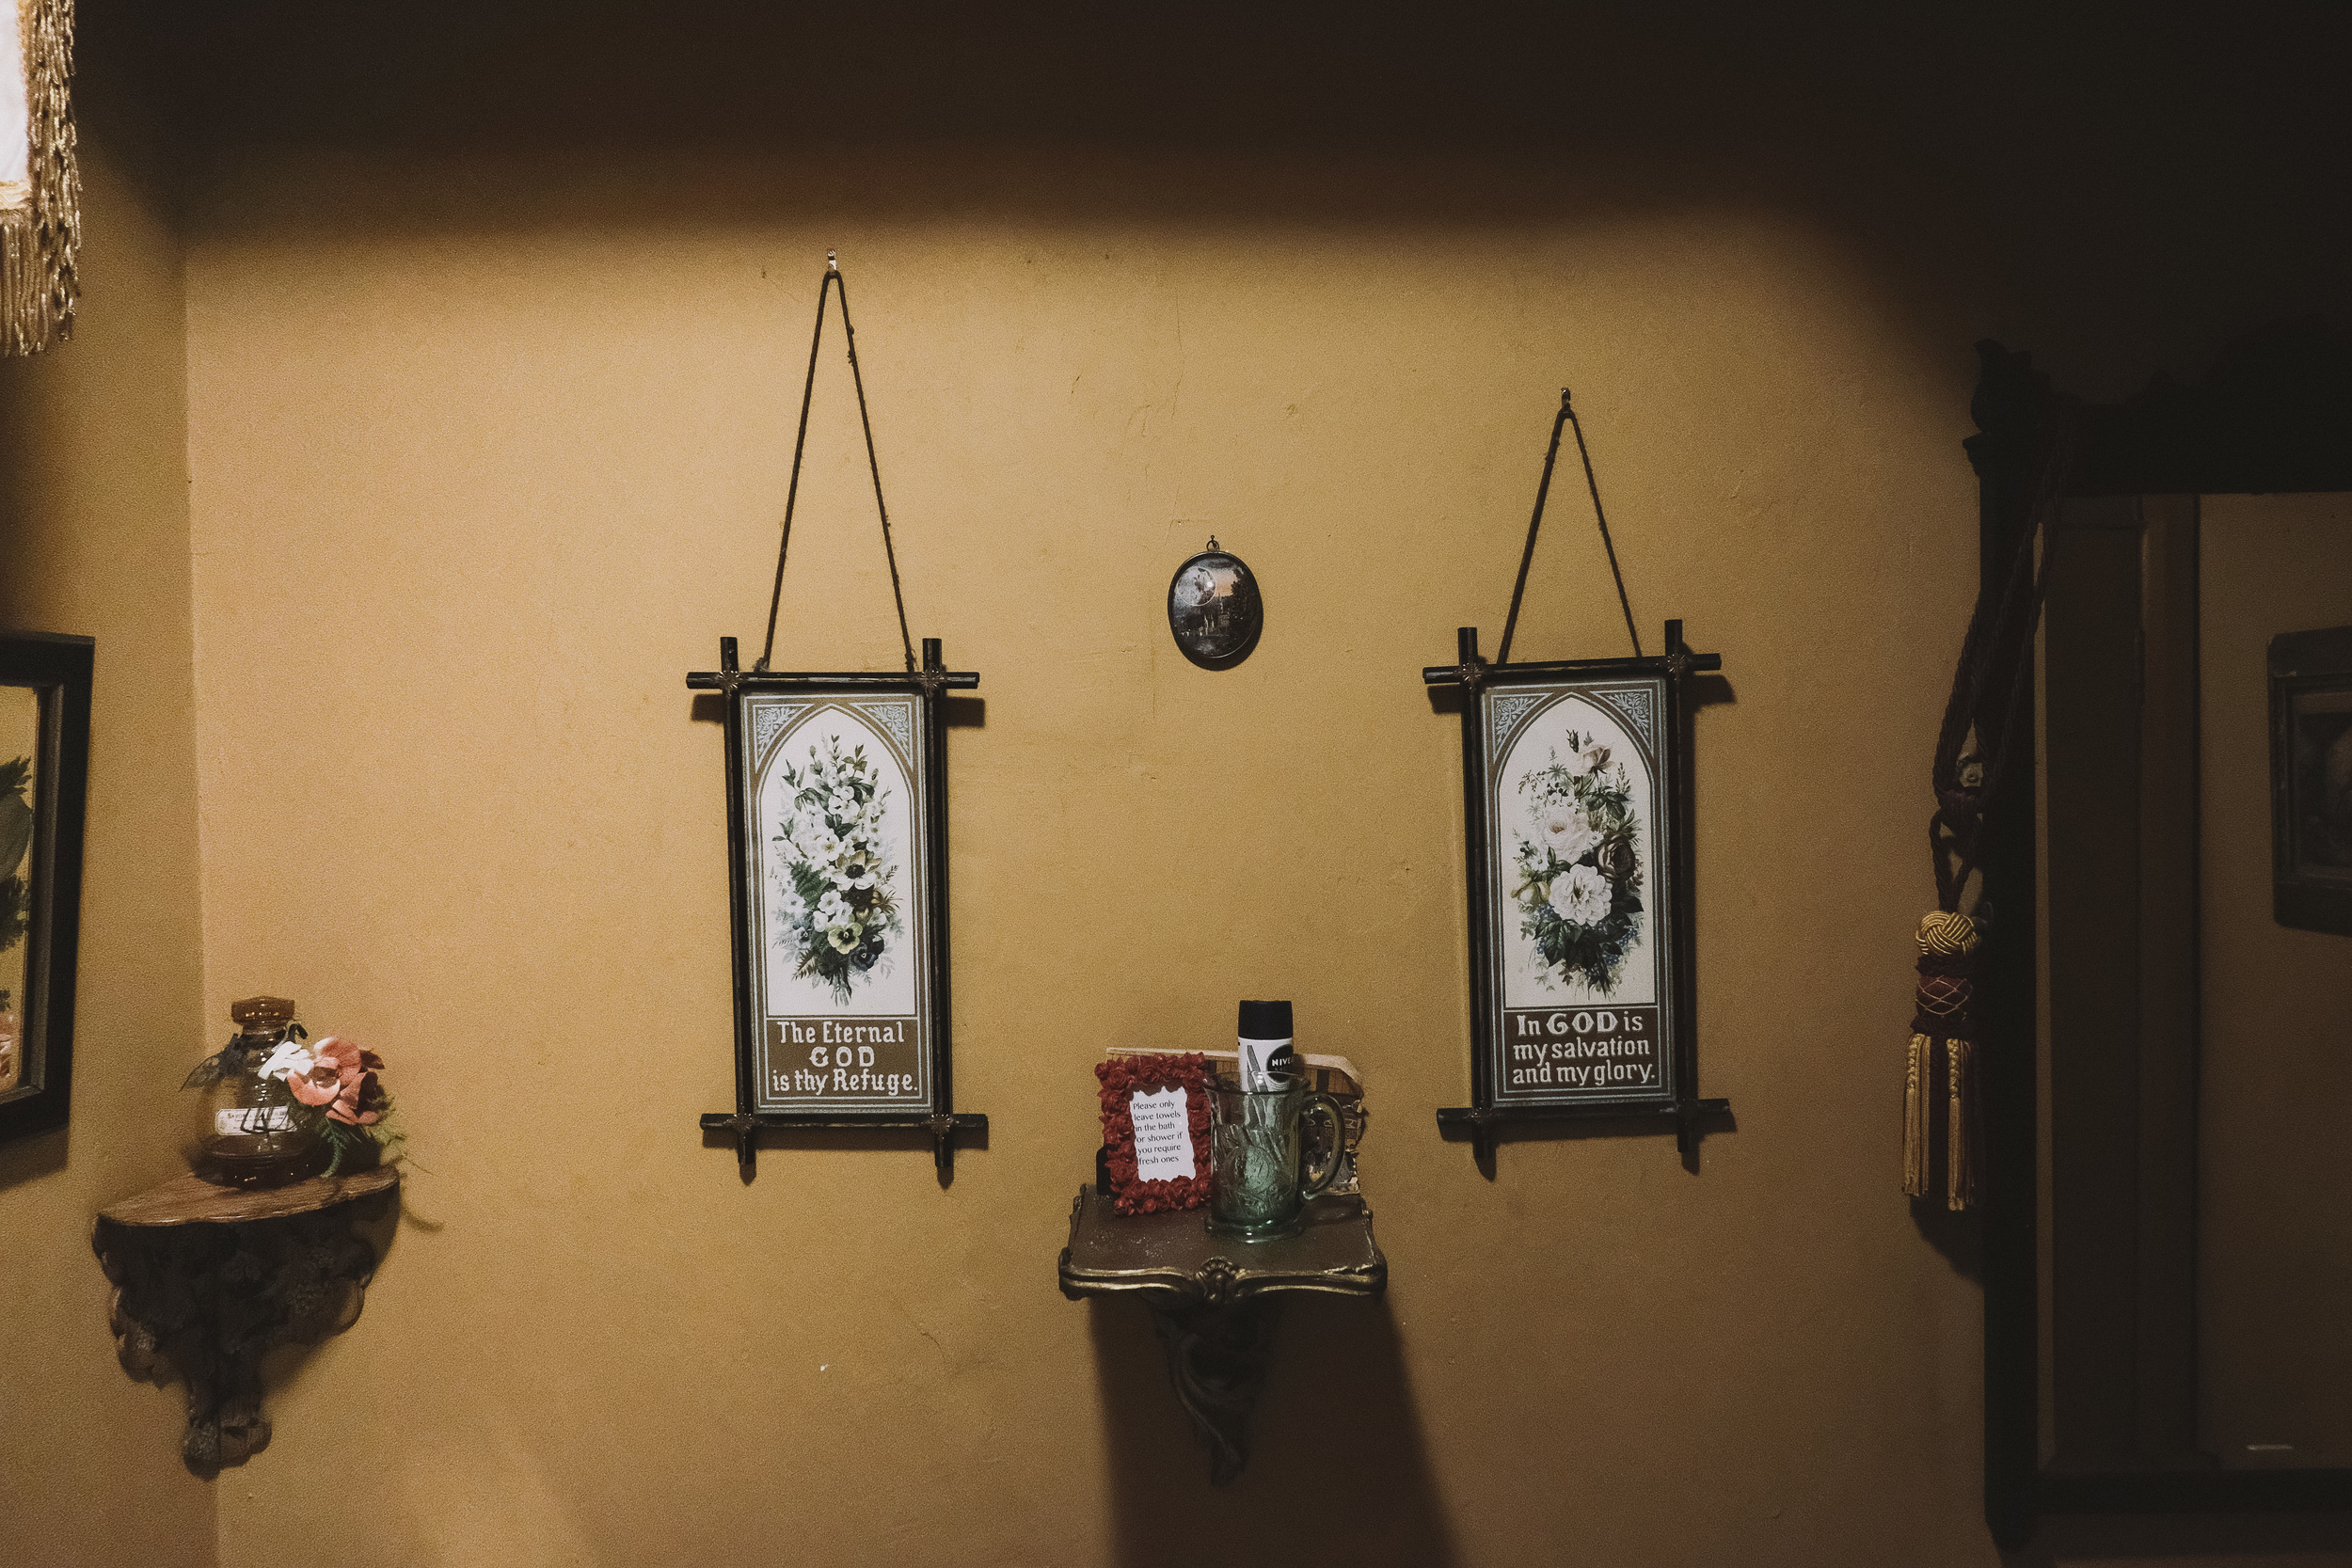 La Rosa Hotel Whitby // Sacre Coeur Room Wall Bathroom // By Wedding Photographer Barry Forshaw